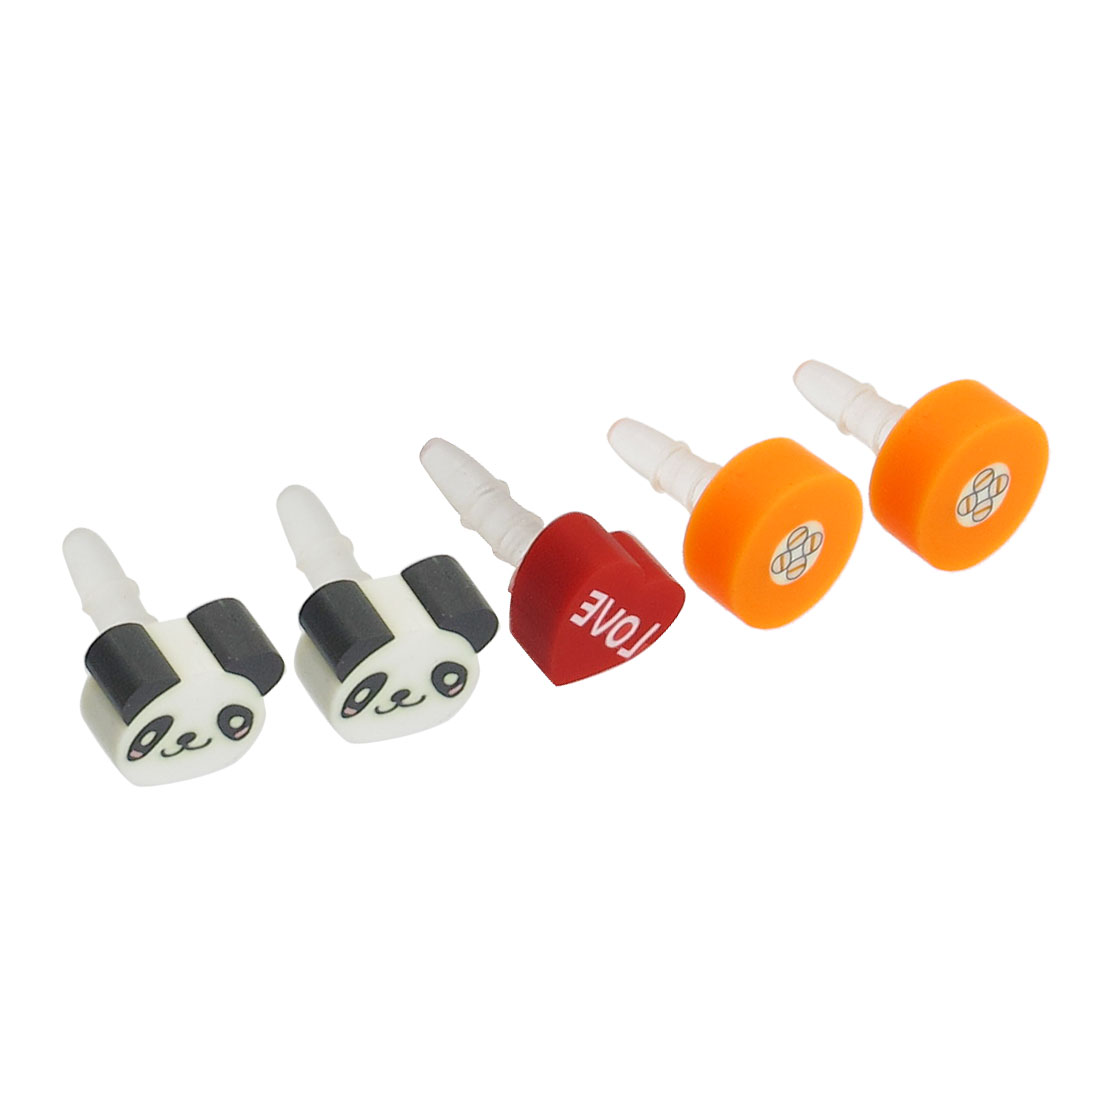 5 Pcs Heart Panda Decor 3.5mm Earphone Ear Cap Dust